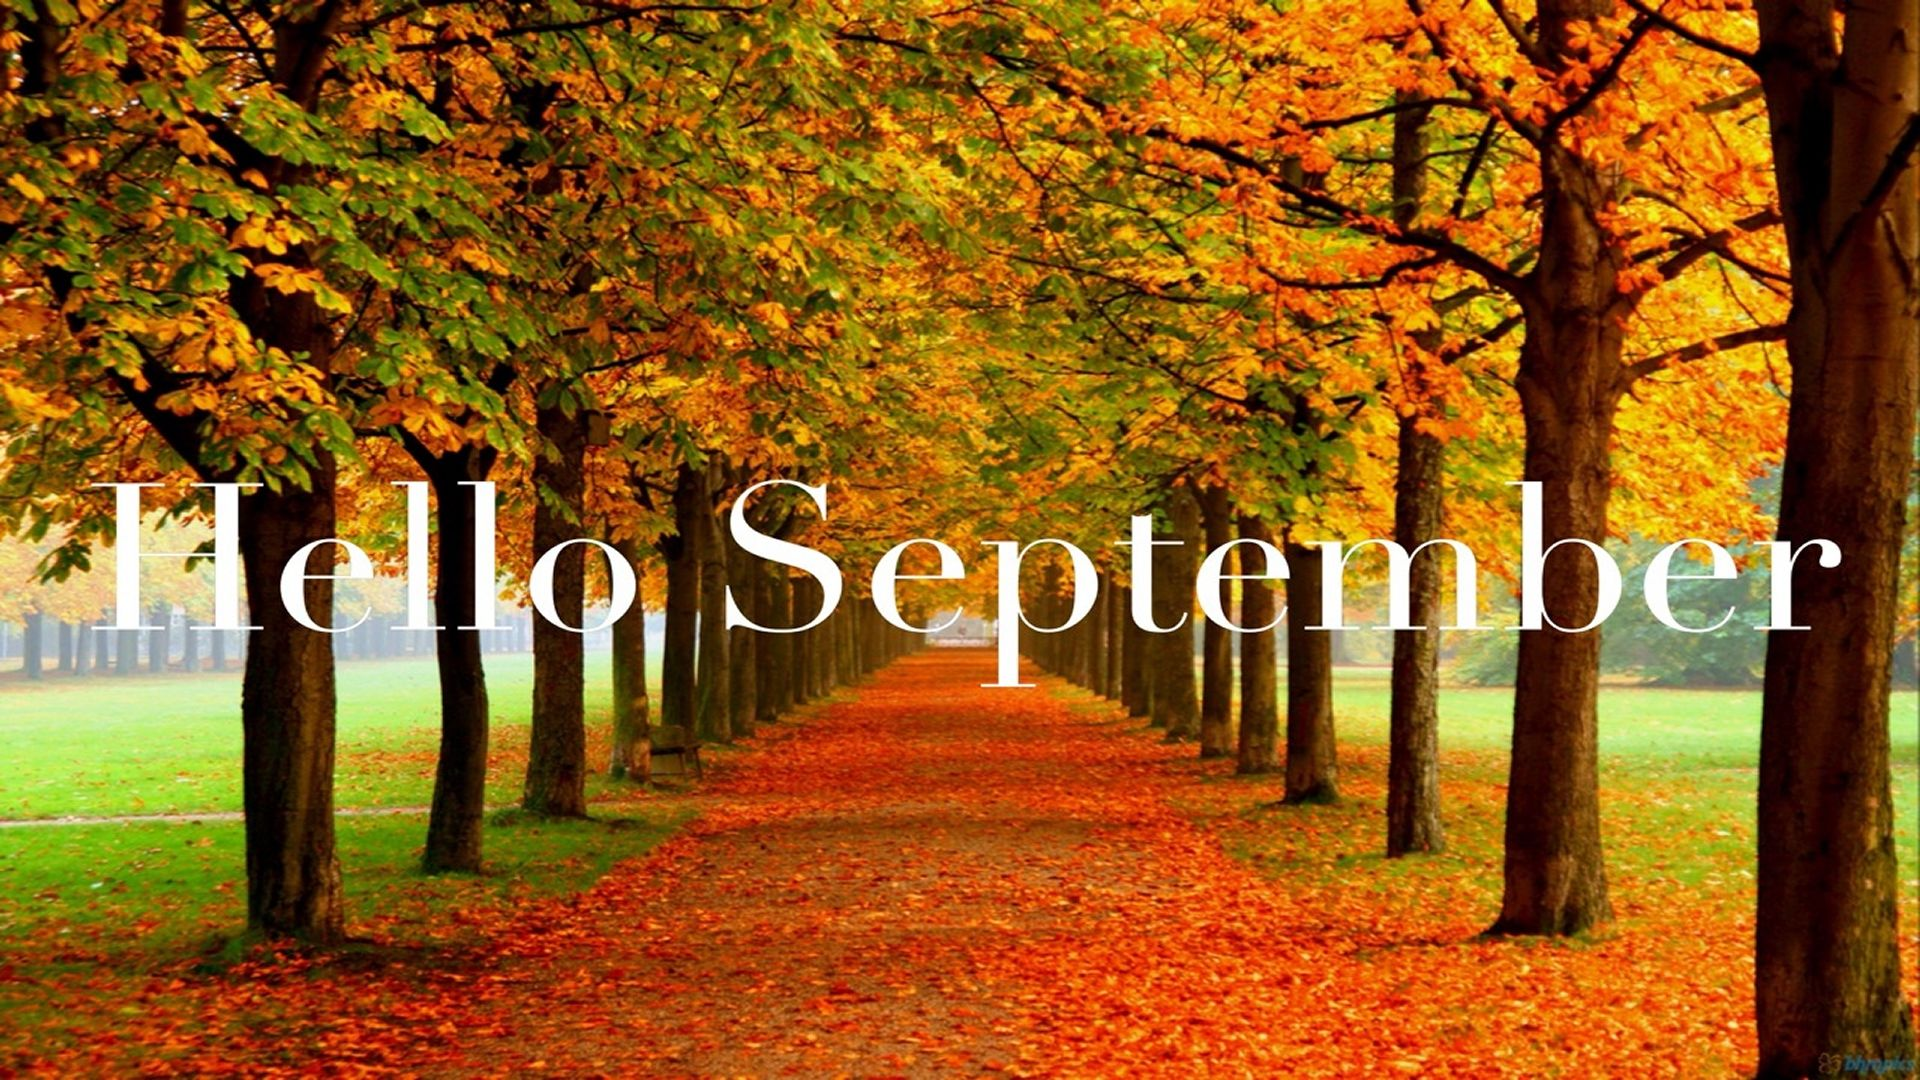 Hd Wallpaper Of Good Morning With Quotes Hello September Pictures Photos And Images For Facebook